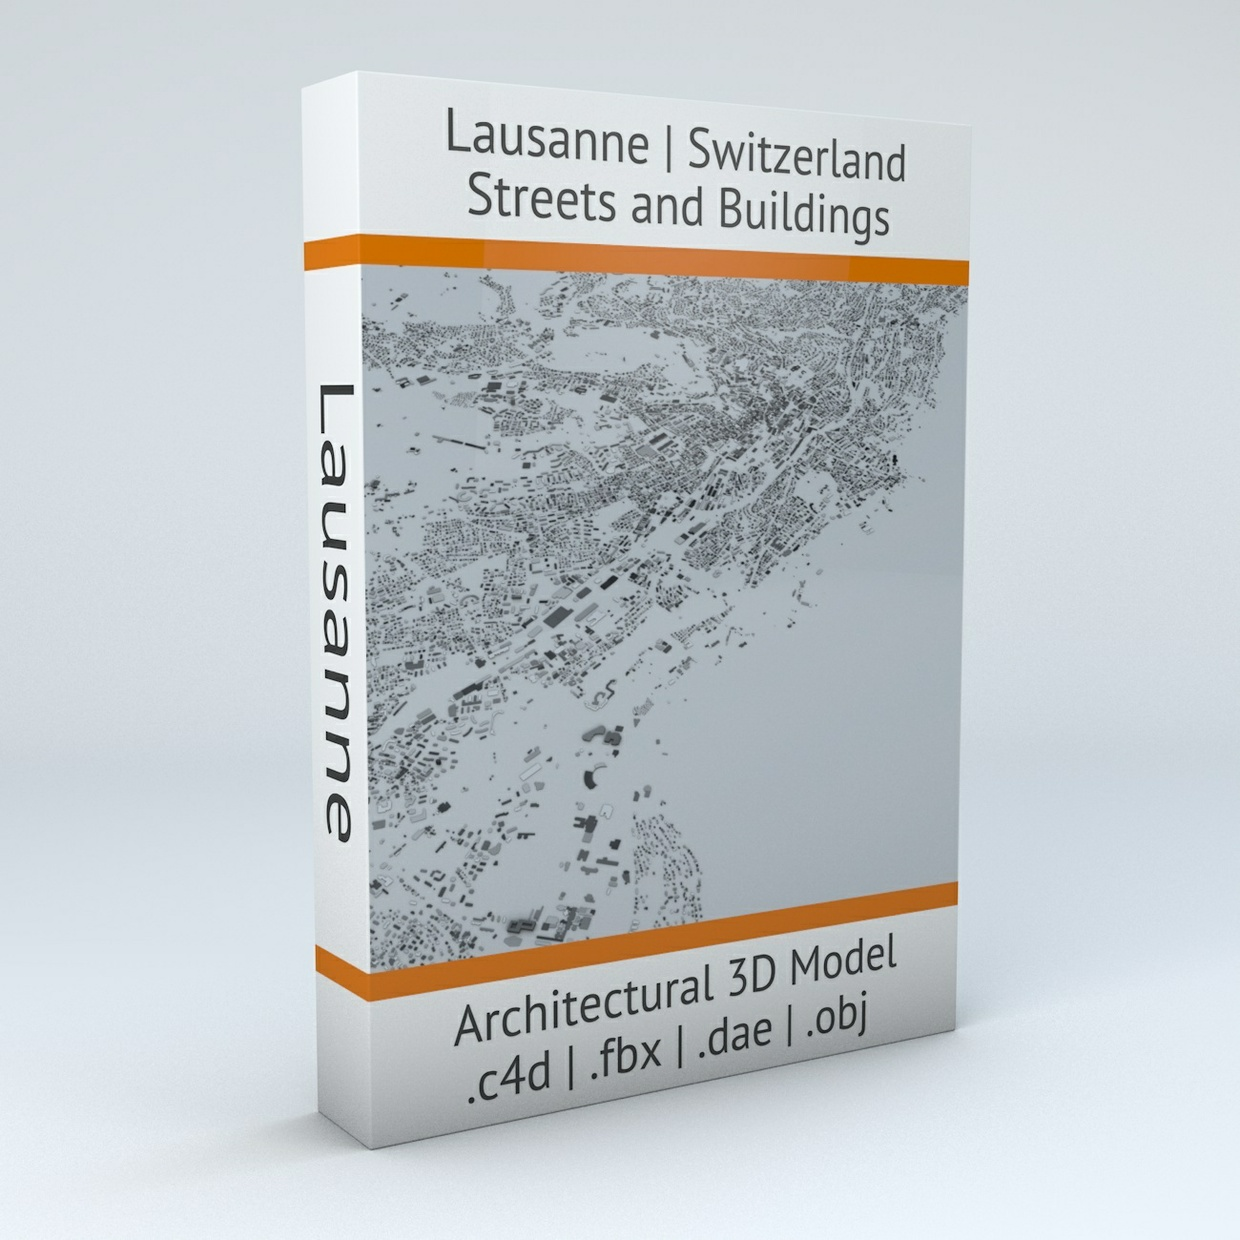 Lausanne Streets and Buildings Architectural 3D Model